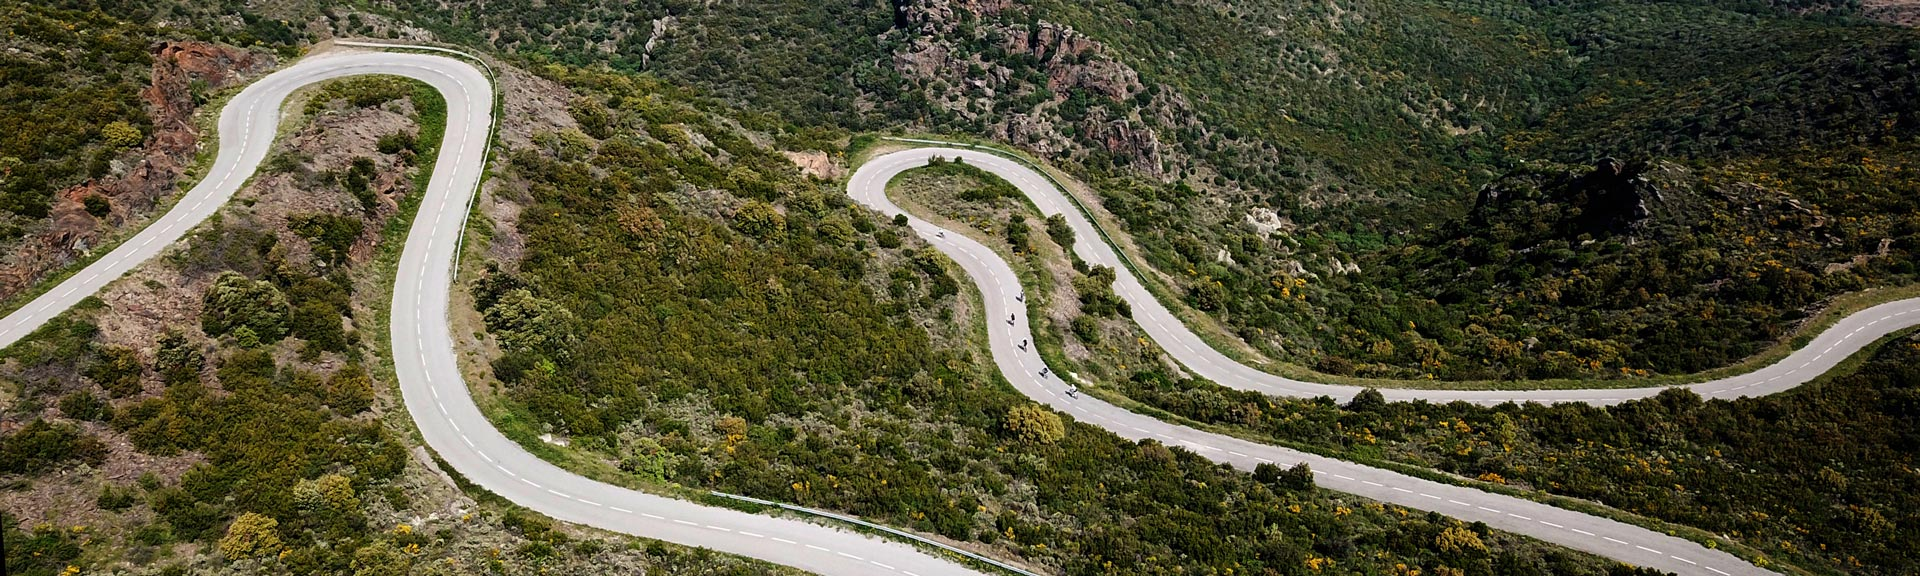 Bikecat Custom Cycling Tours - Cycling in Costa Brava